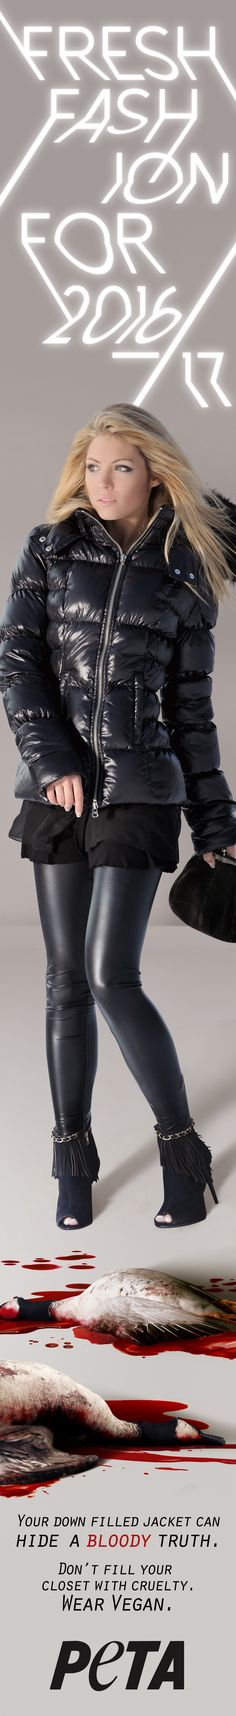 There's nothing quite like the feeling of a down jacket in the winter. Layer your look with silver accent pieces and tie it all together with a black clutch. #NYFW #NewYorkFashionWeek #Fashion #FashionWeek #Down #DownJacket